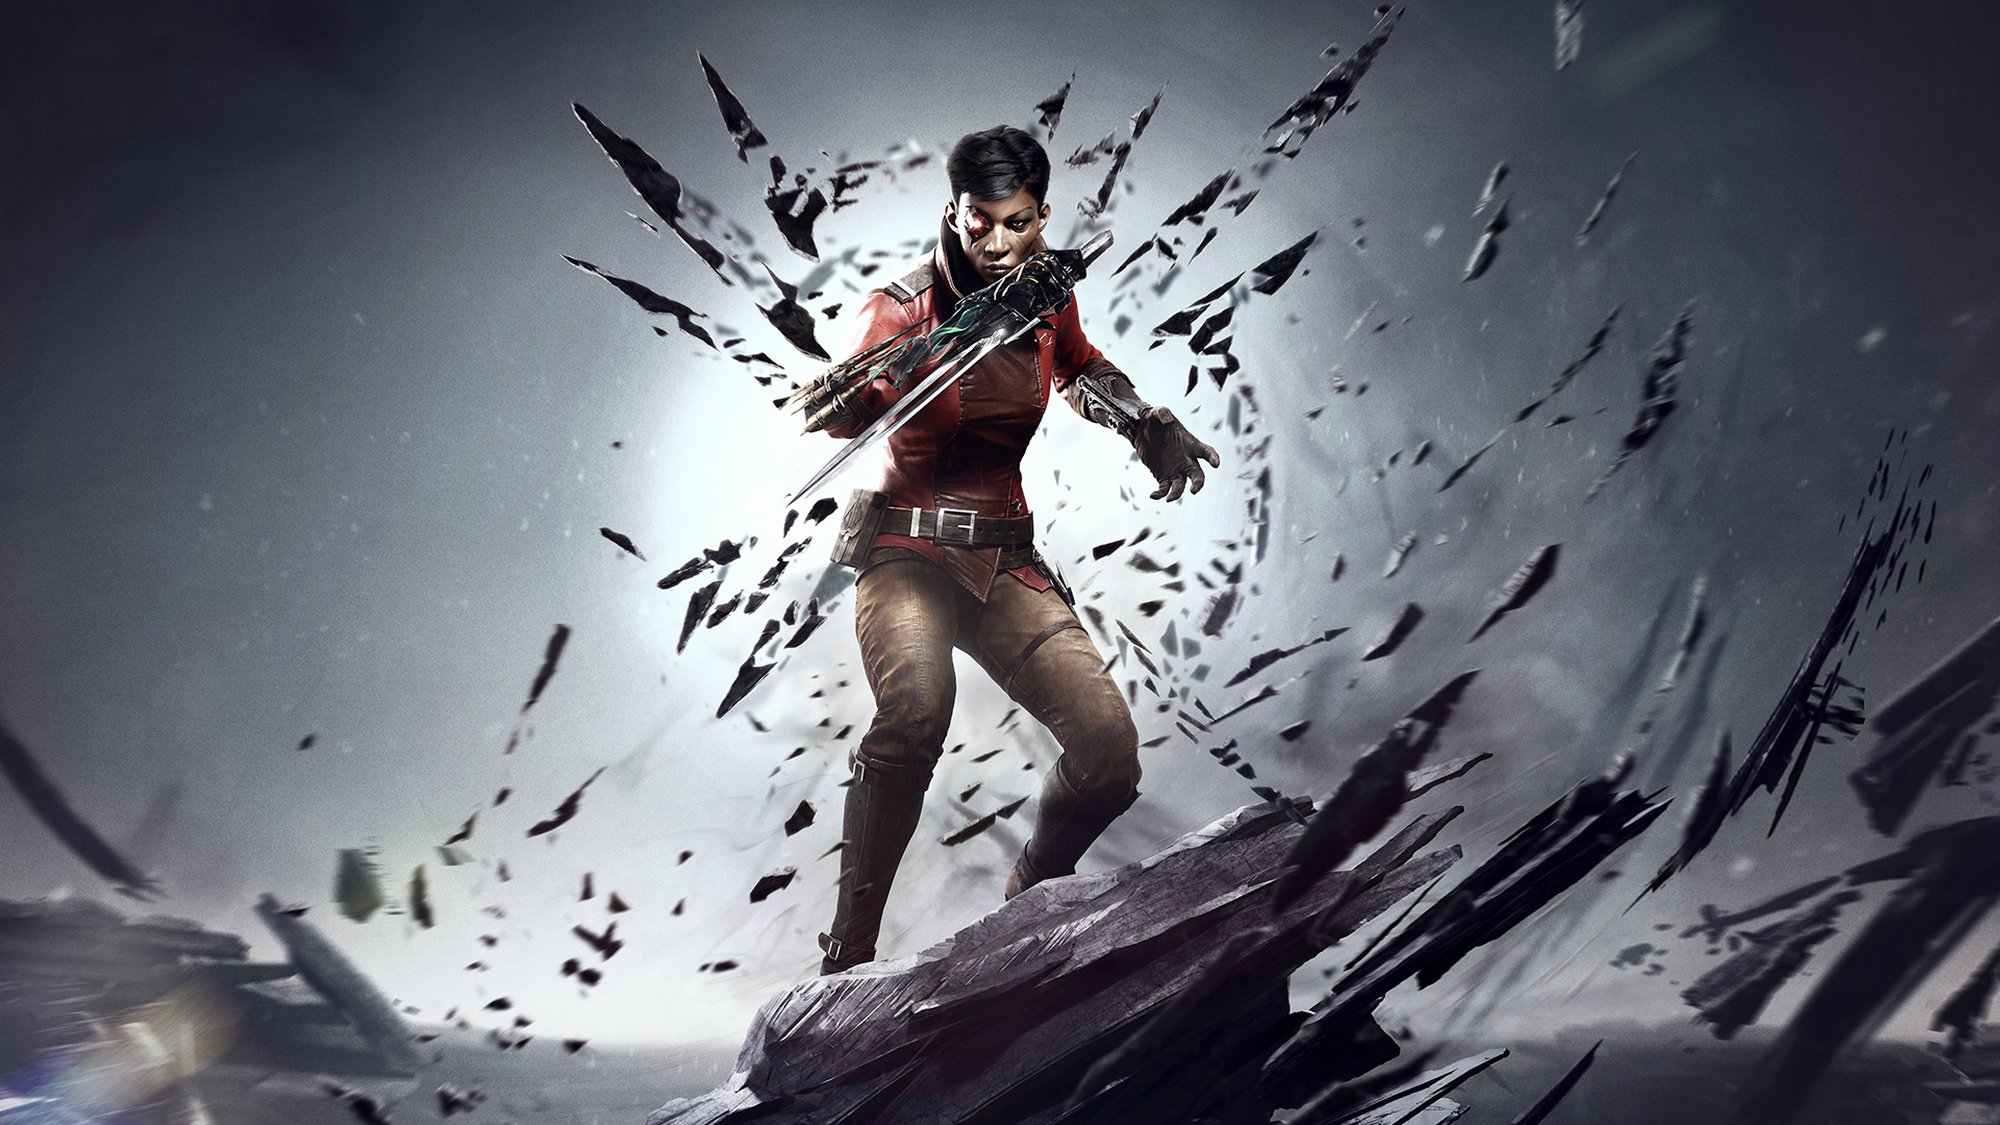 Dishonored Death of the Outsider HD Wallpaper Background Image 2000x1125